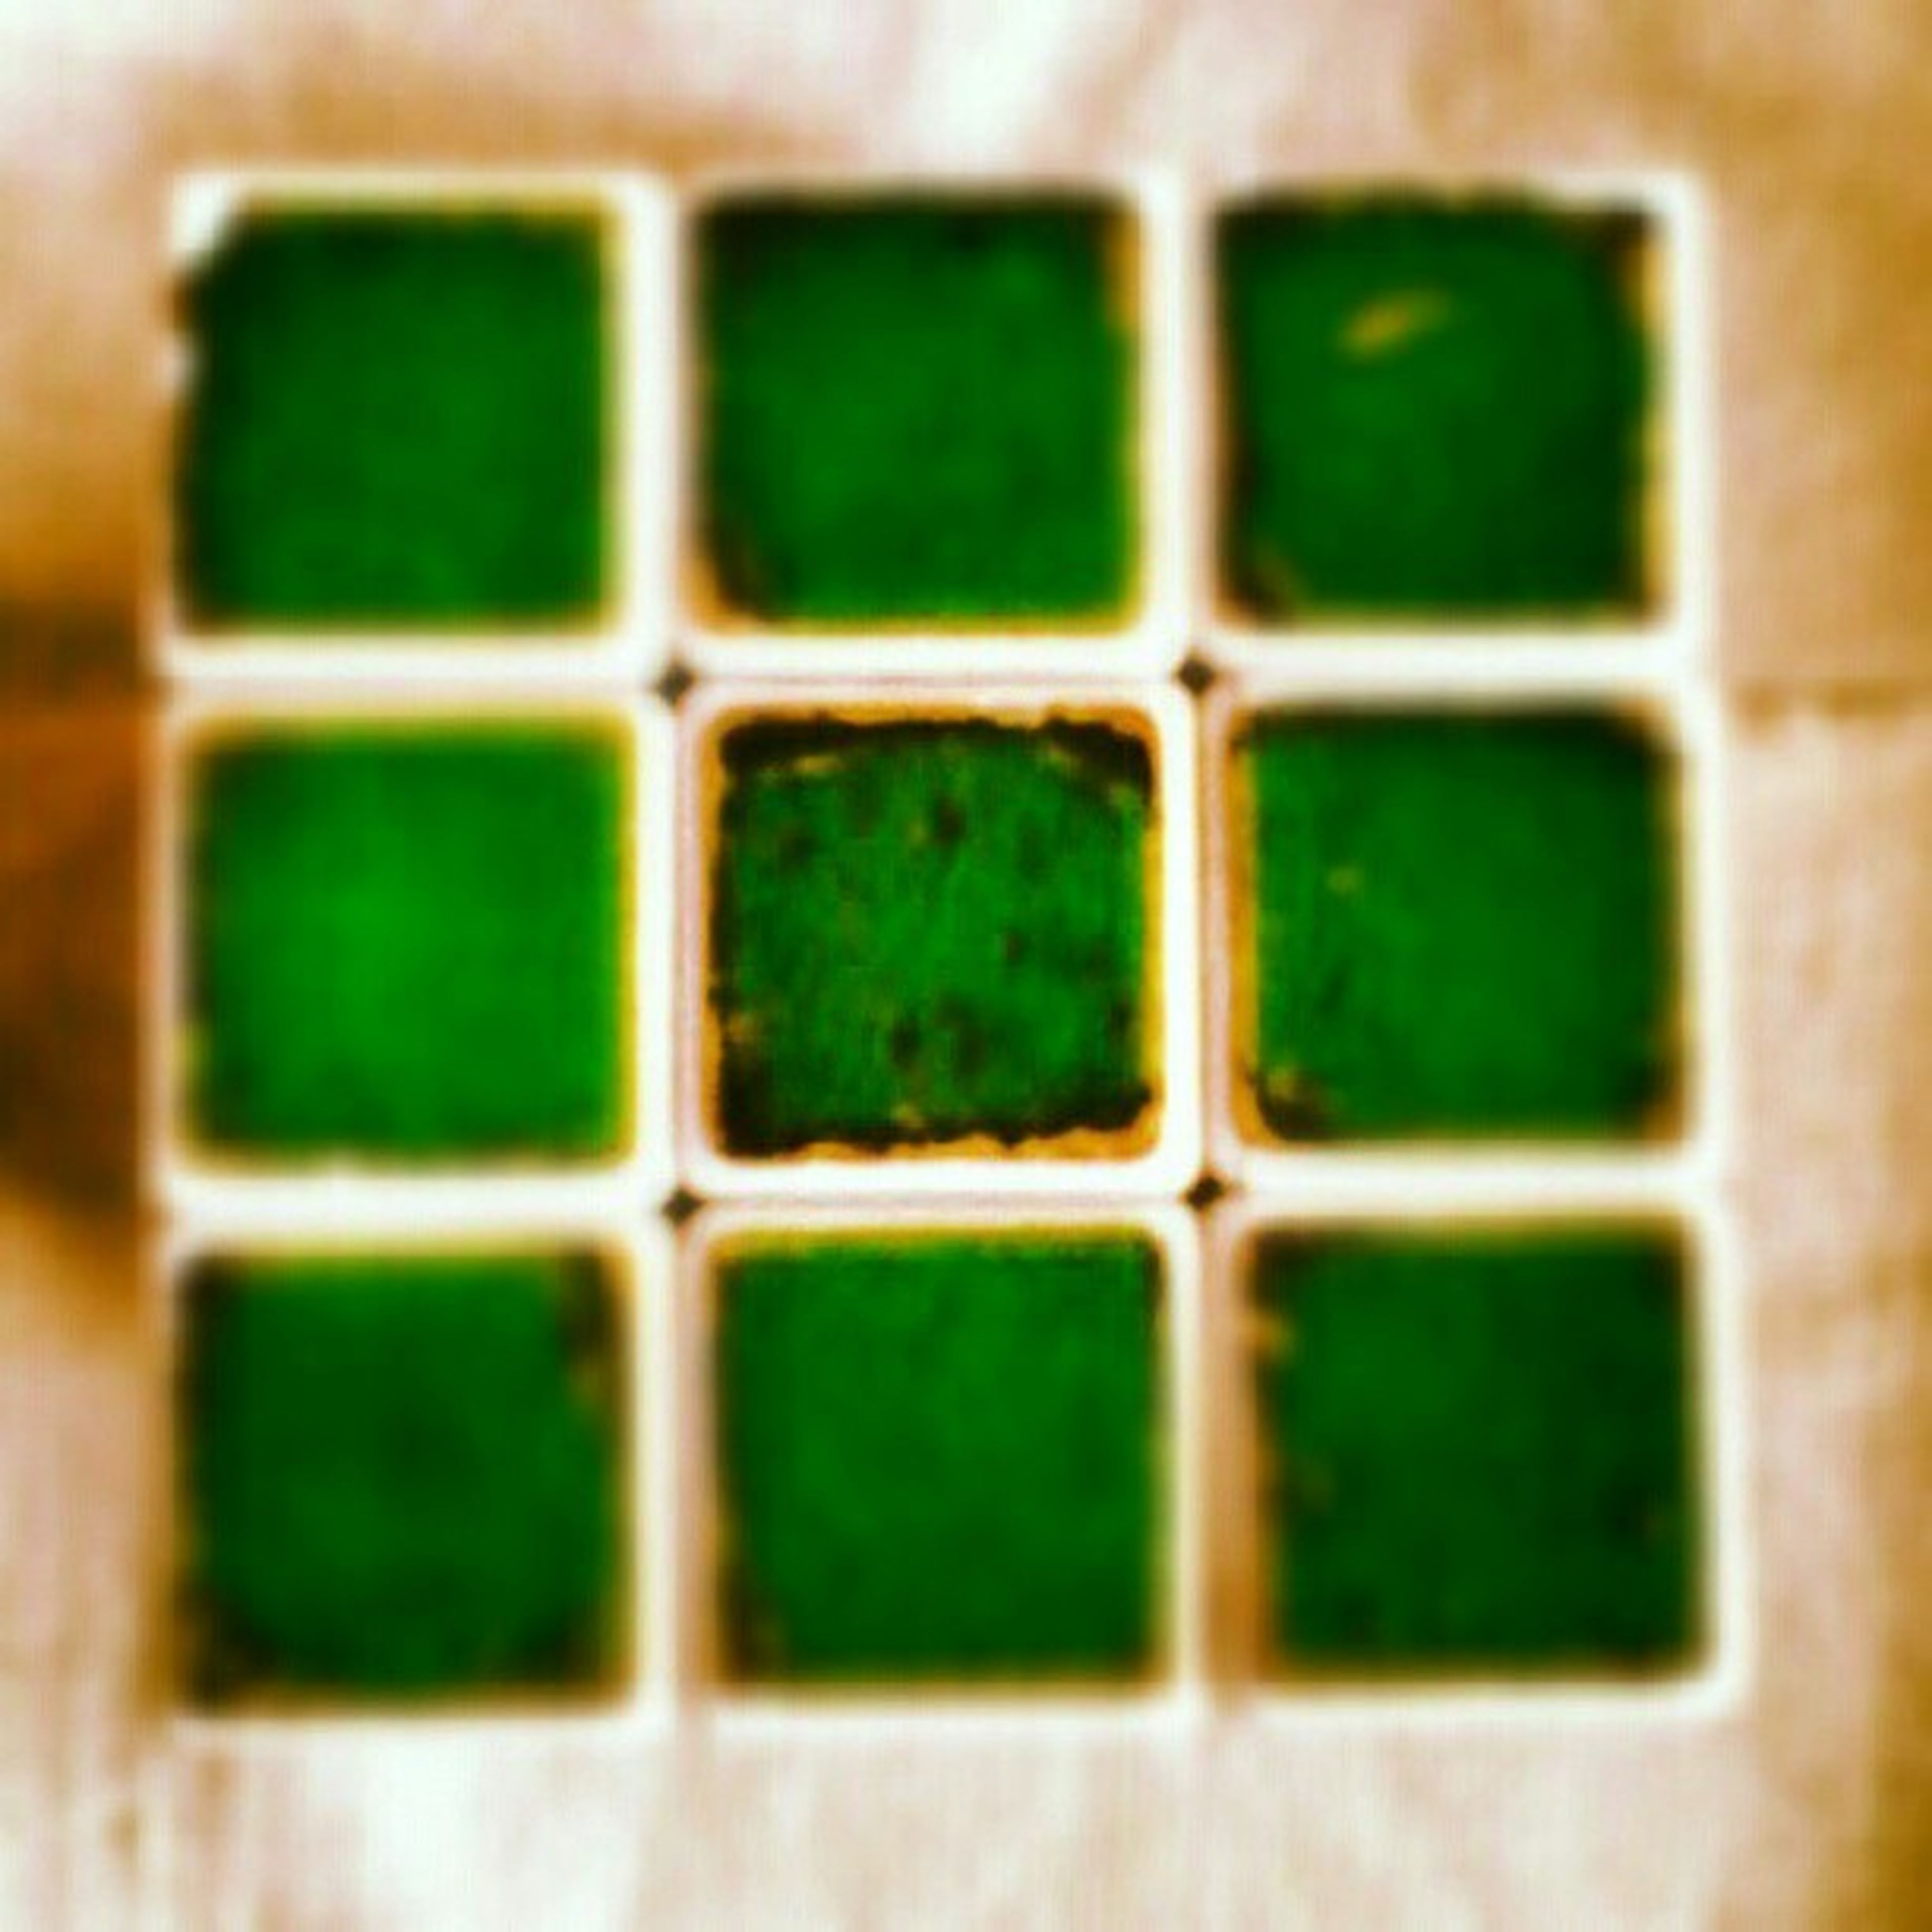 full frame, backgrounds, indoors, geometric shape, green color, pattern, close-up, square shape, textured, shape, multi colored, window, no people, design, repetition, glass - material, selective focus, detail, still life, in a row